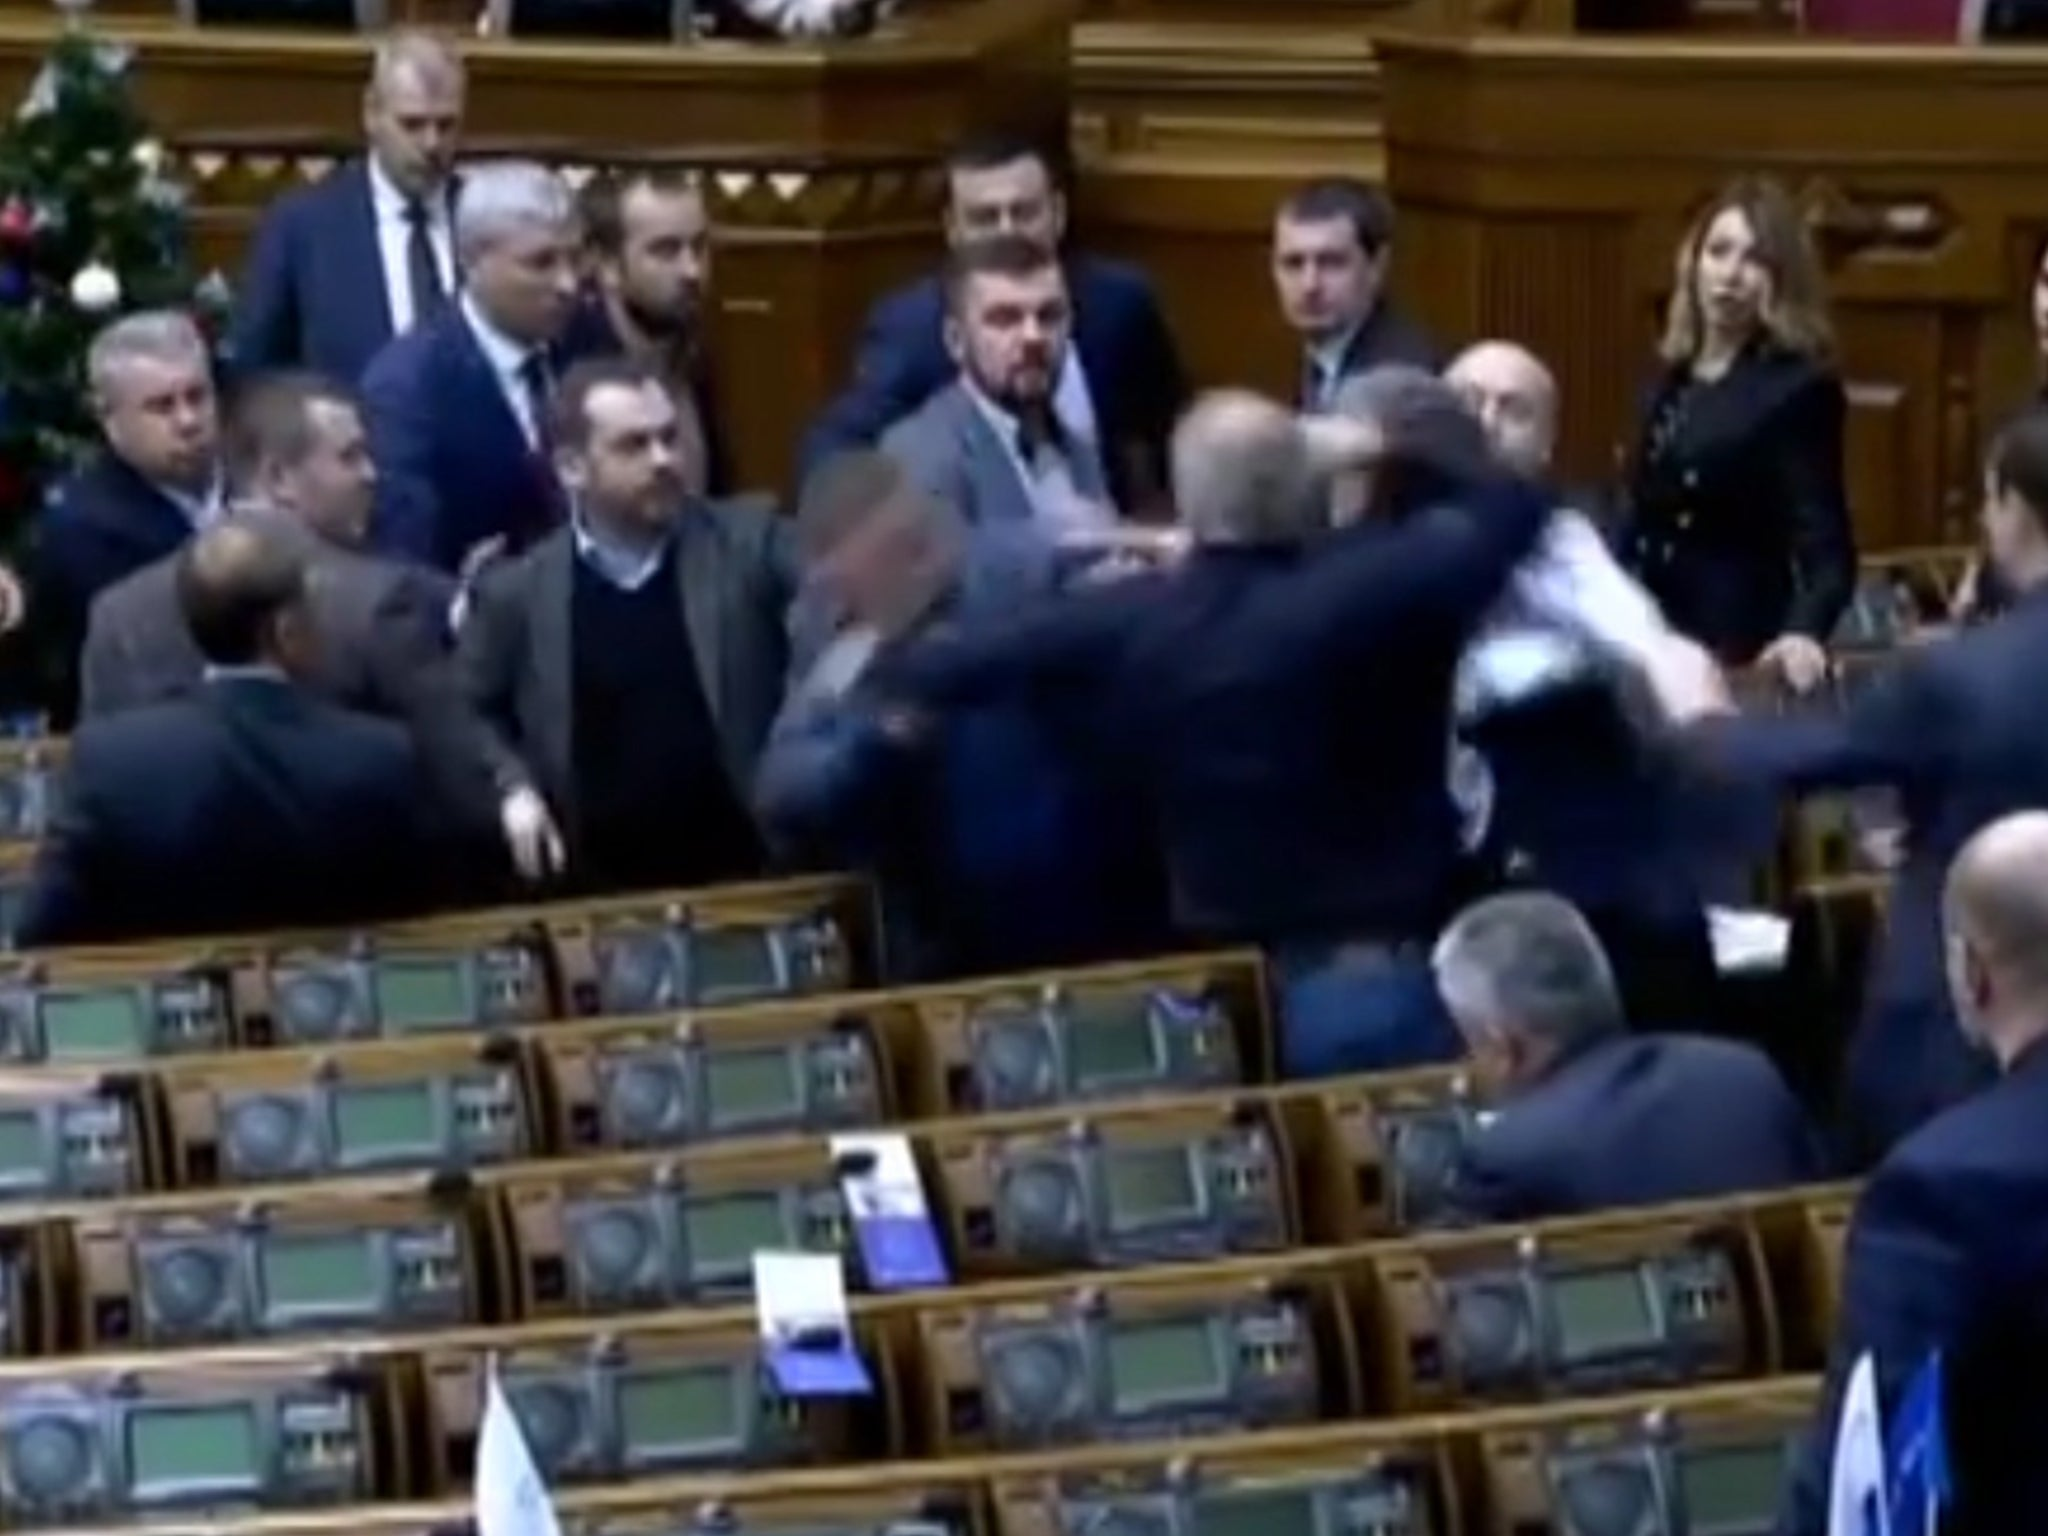 Fight breaks out a Ukrainian parliament over 'Putin's agent' poster